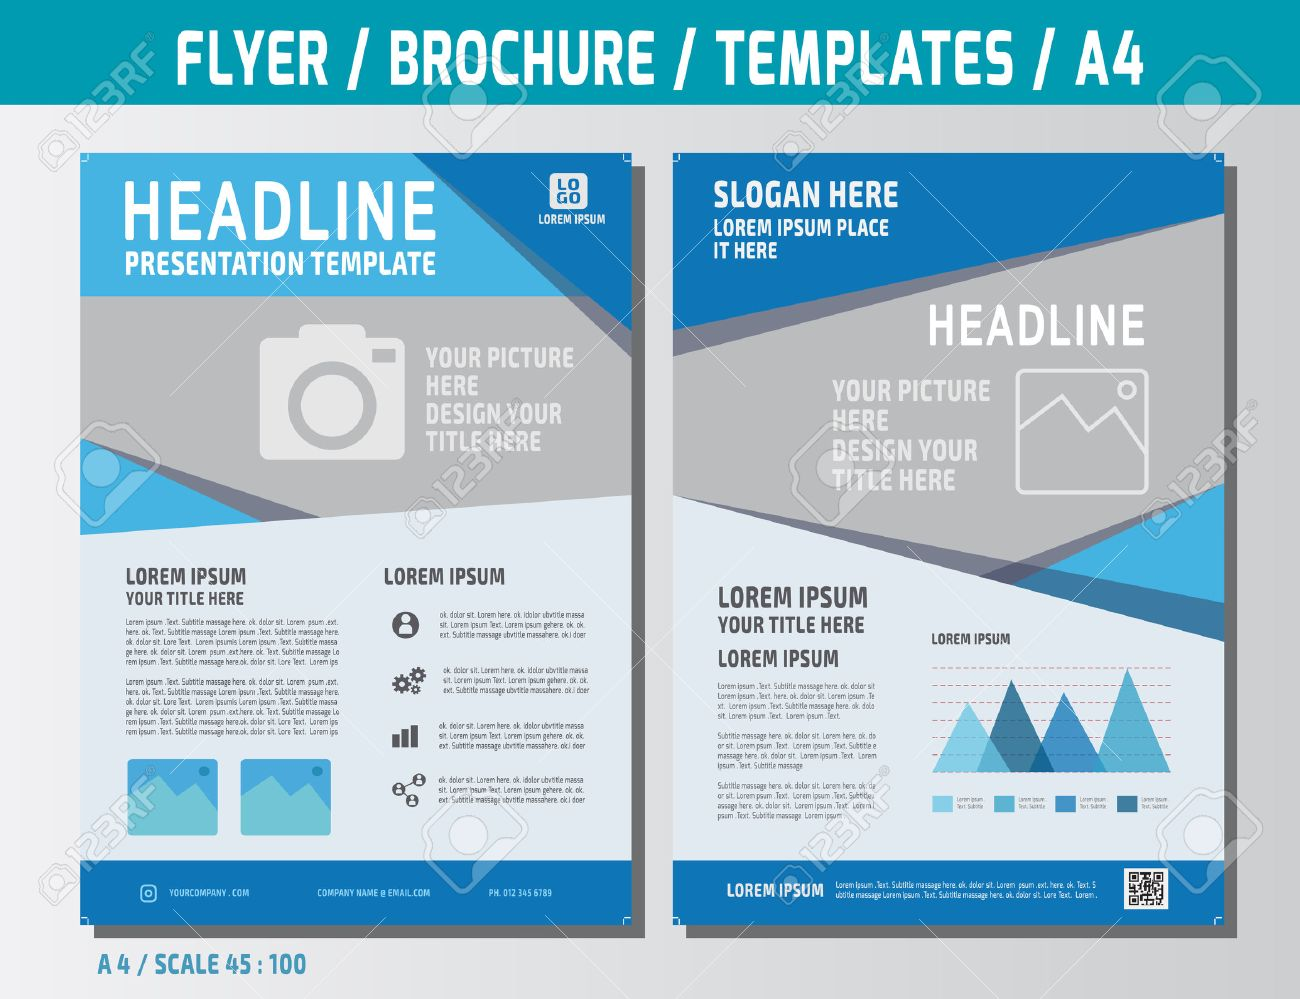 Flyer Multipurpose Design Template In A4 Size. Business Marketing ...